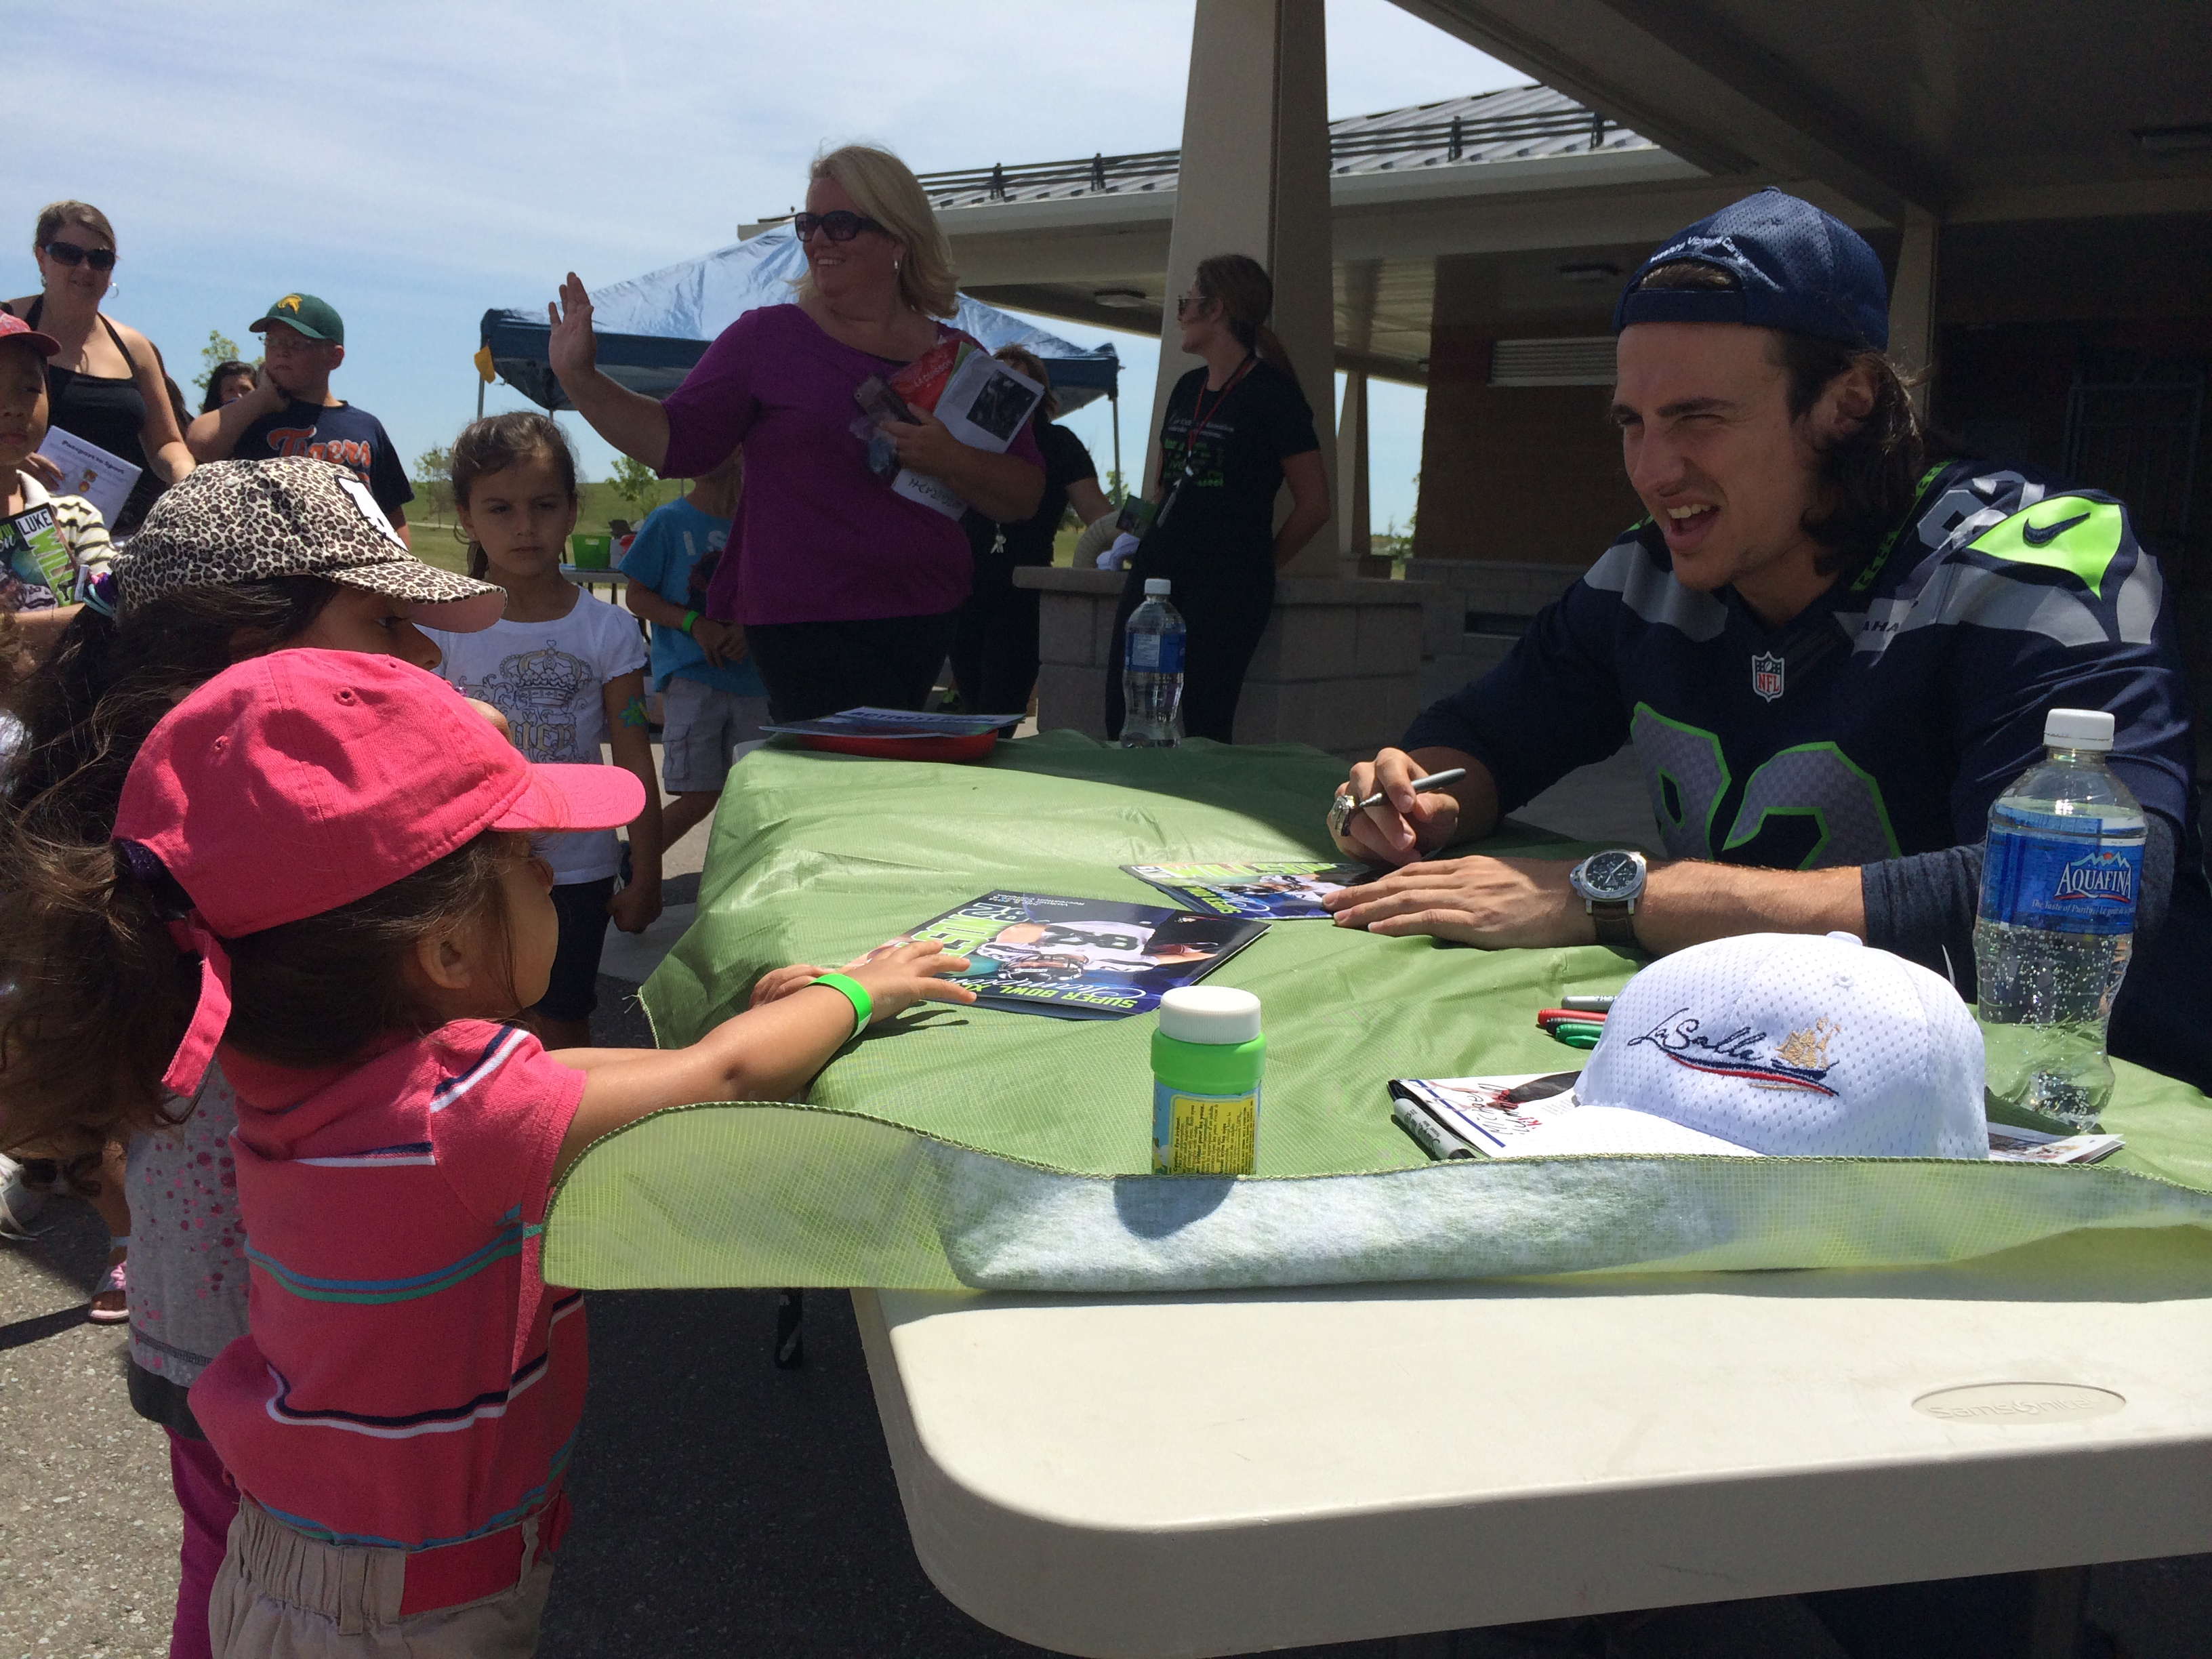 LaSalle native and Super Bowl Champion Luke Willson poses for photos and signs autographs at a community event in his honour held at the Vollmer Recreational Complex on July 5, 2014. (Photo by Ricardo Veneza)